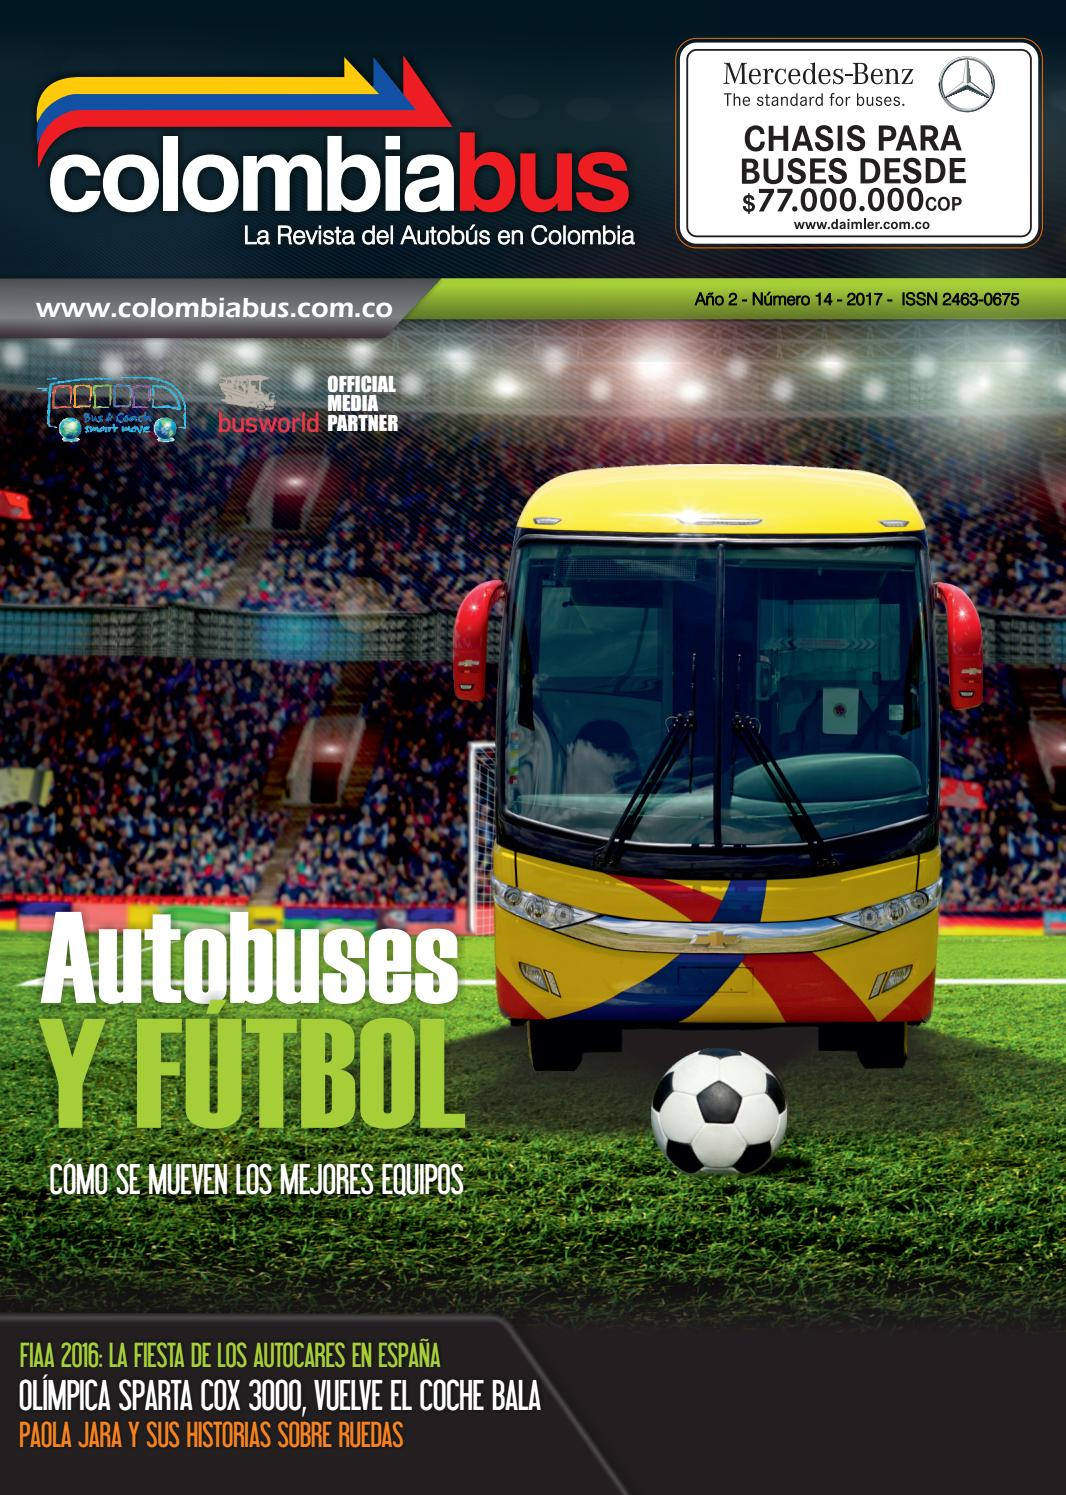 Revista Colombiabus 2017 - Ed. 14 by Colombiabus - issuu